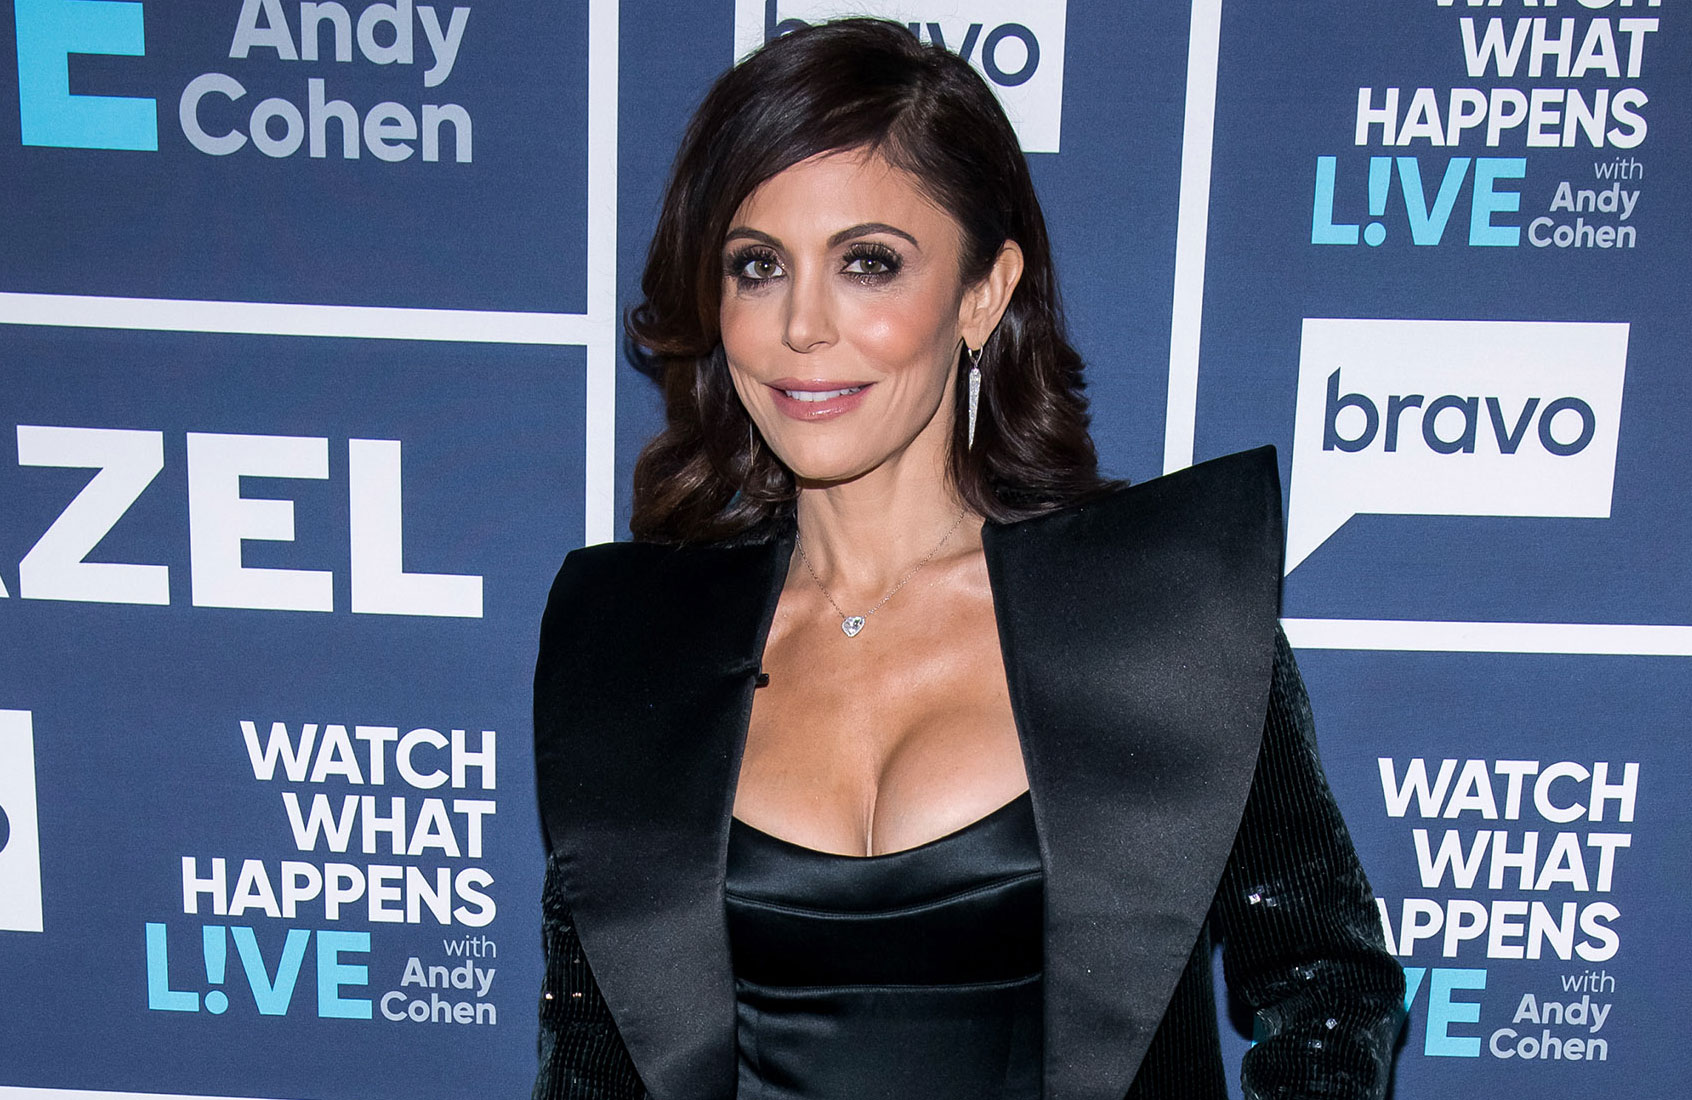 Bethenny Frankle Talks Kyle and LVP Feud - Bethenny Frankle on 'Watch What Happens Live with Andy Cohen'.